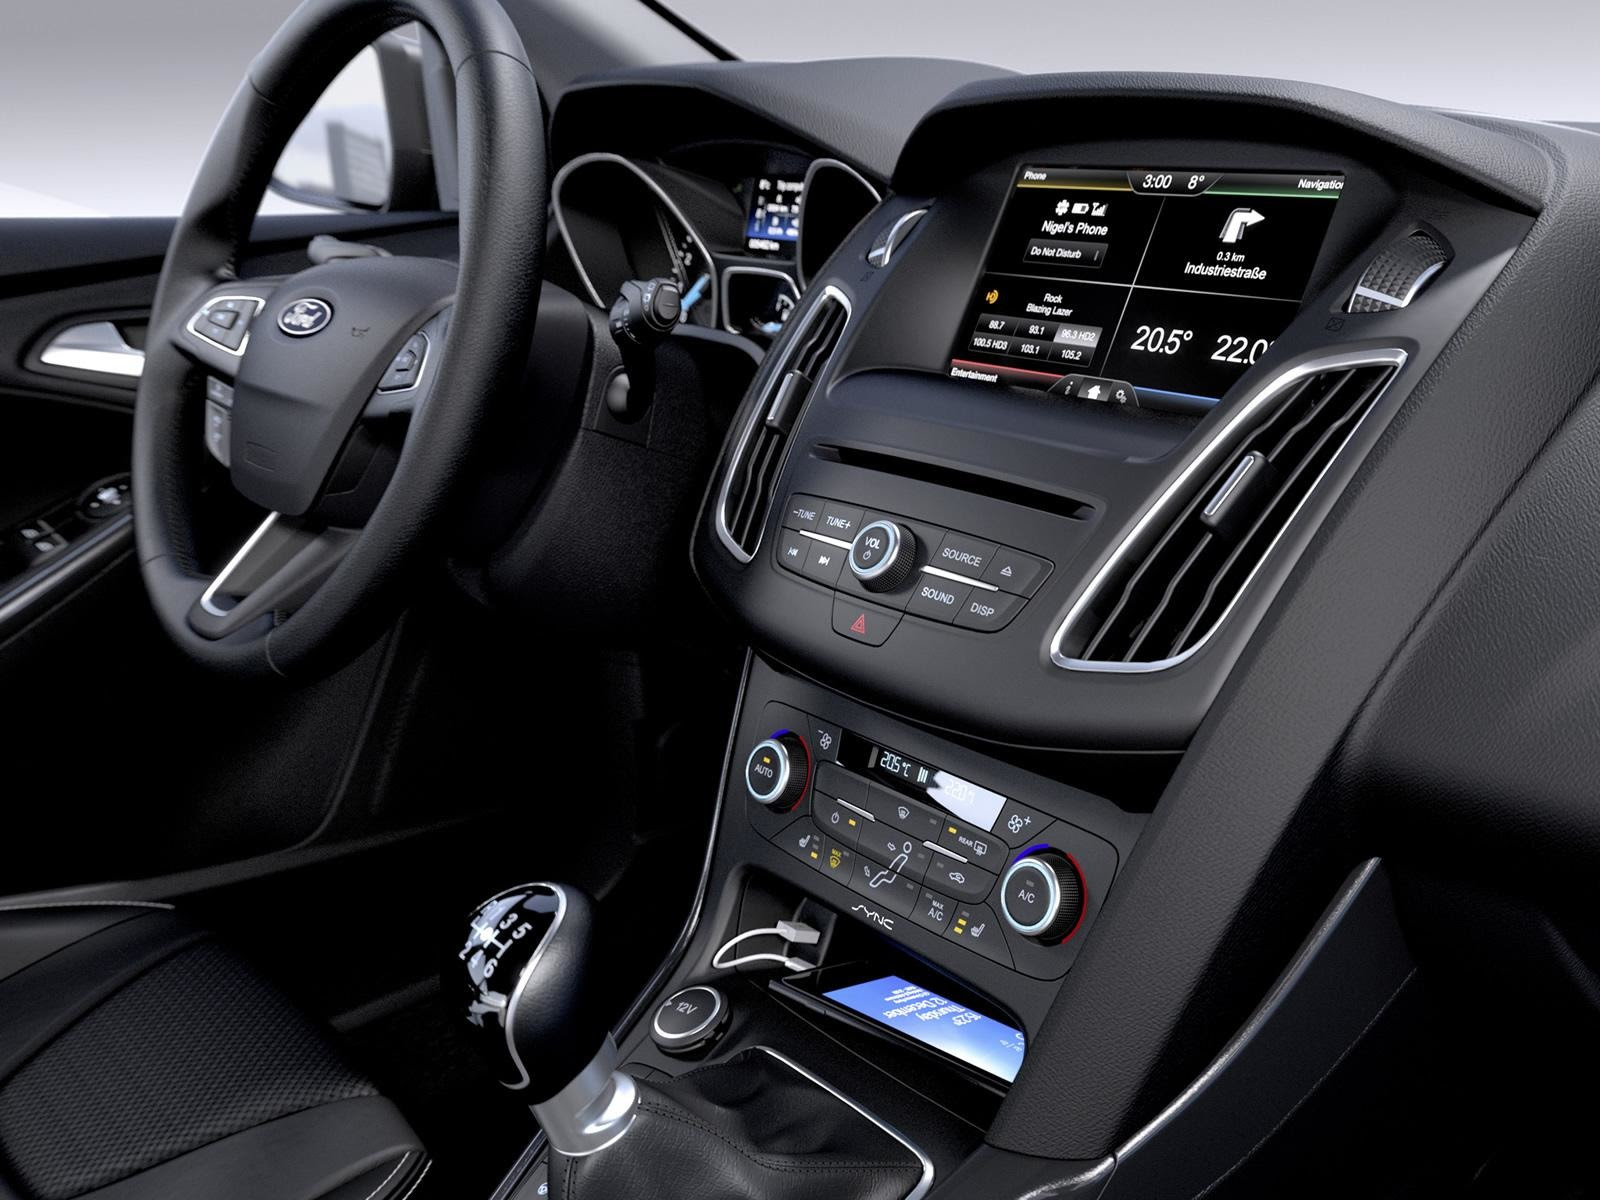 2015 Ford Focus EcoBoost: Manual-Transmission Only